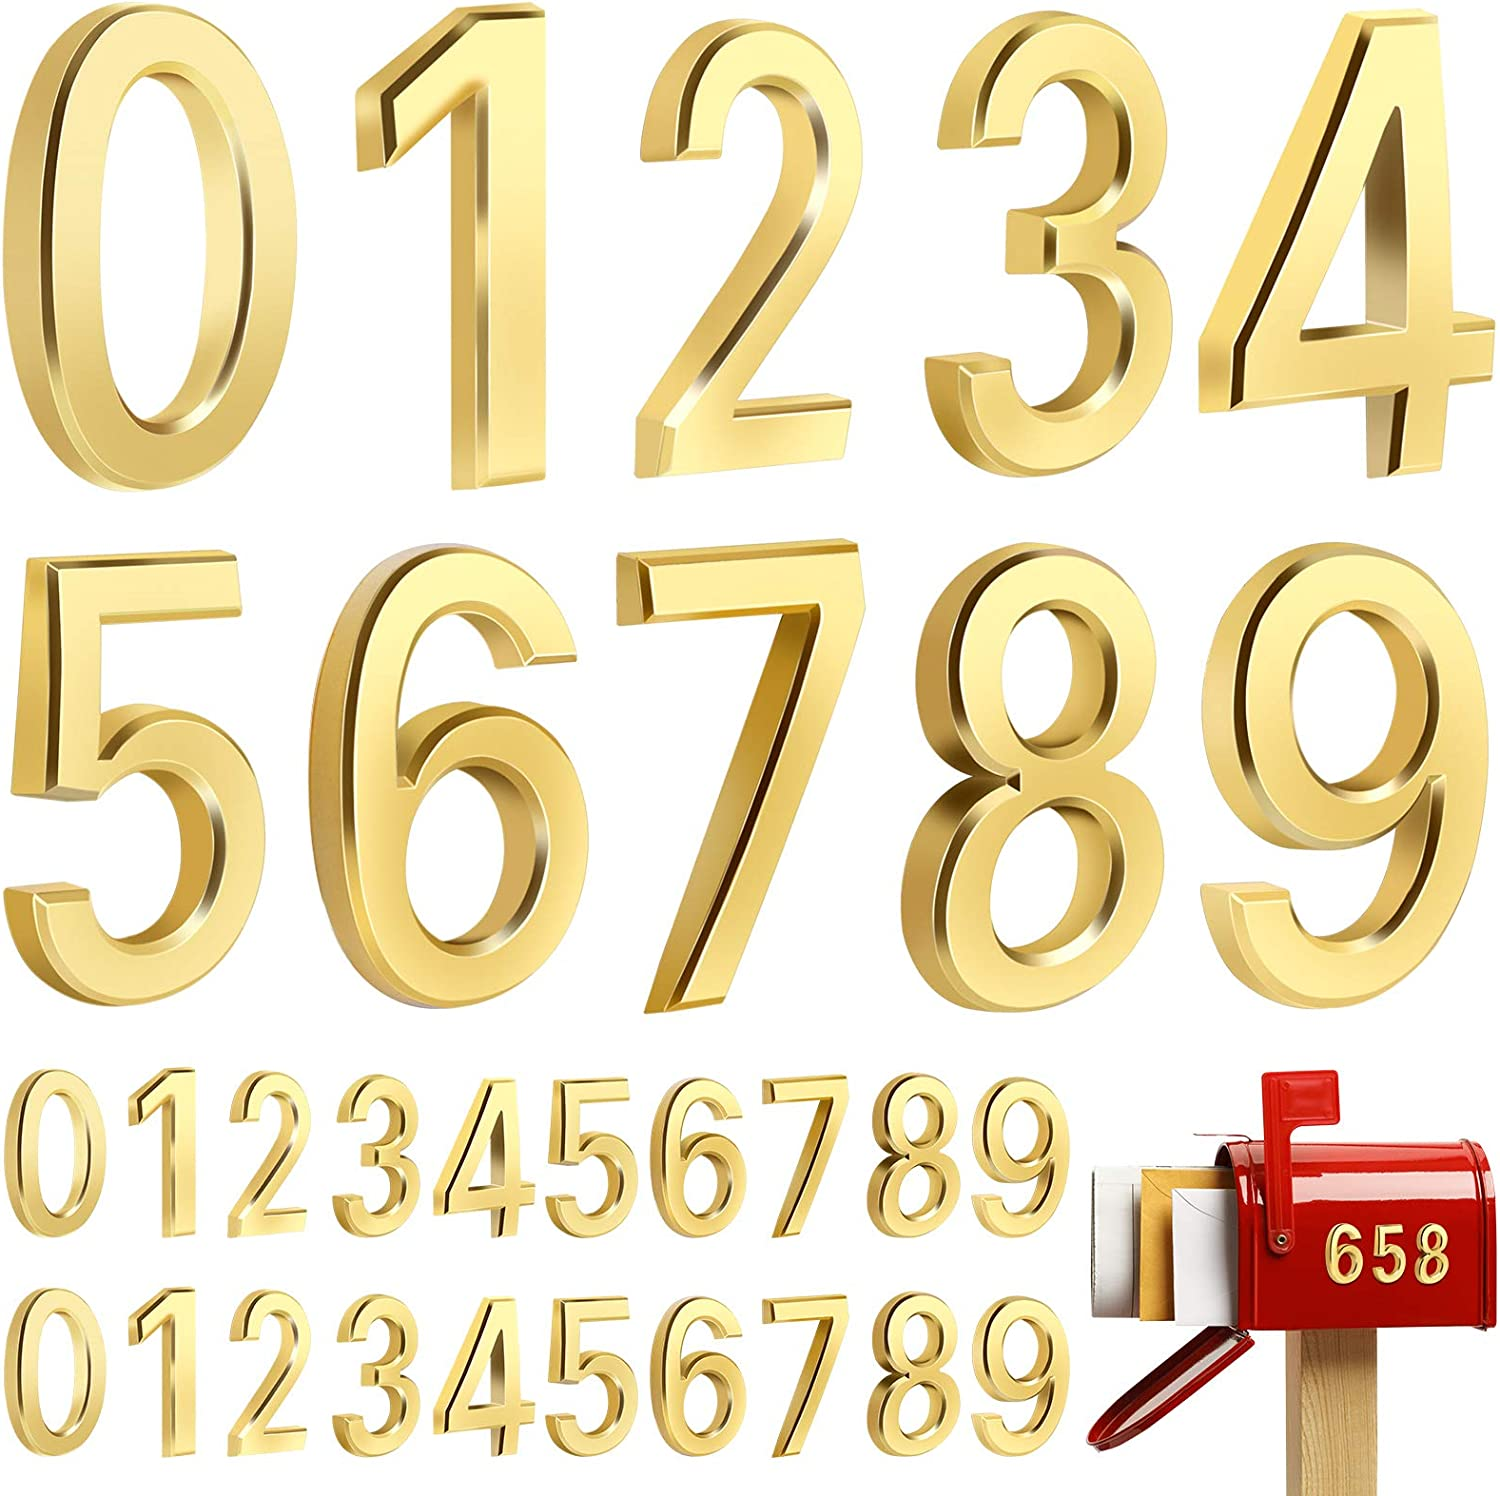 durony 30 Pieces 2.76 Inches Gold 3D Mailbox Numbers 0-9 Self-Adhesive House Door Number Decal Street Address Number Stickers for Mailbox, Office, Cars